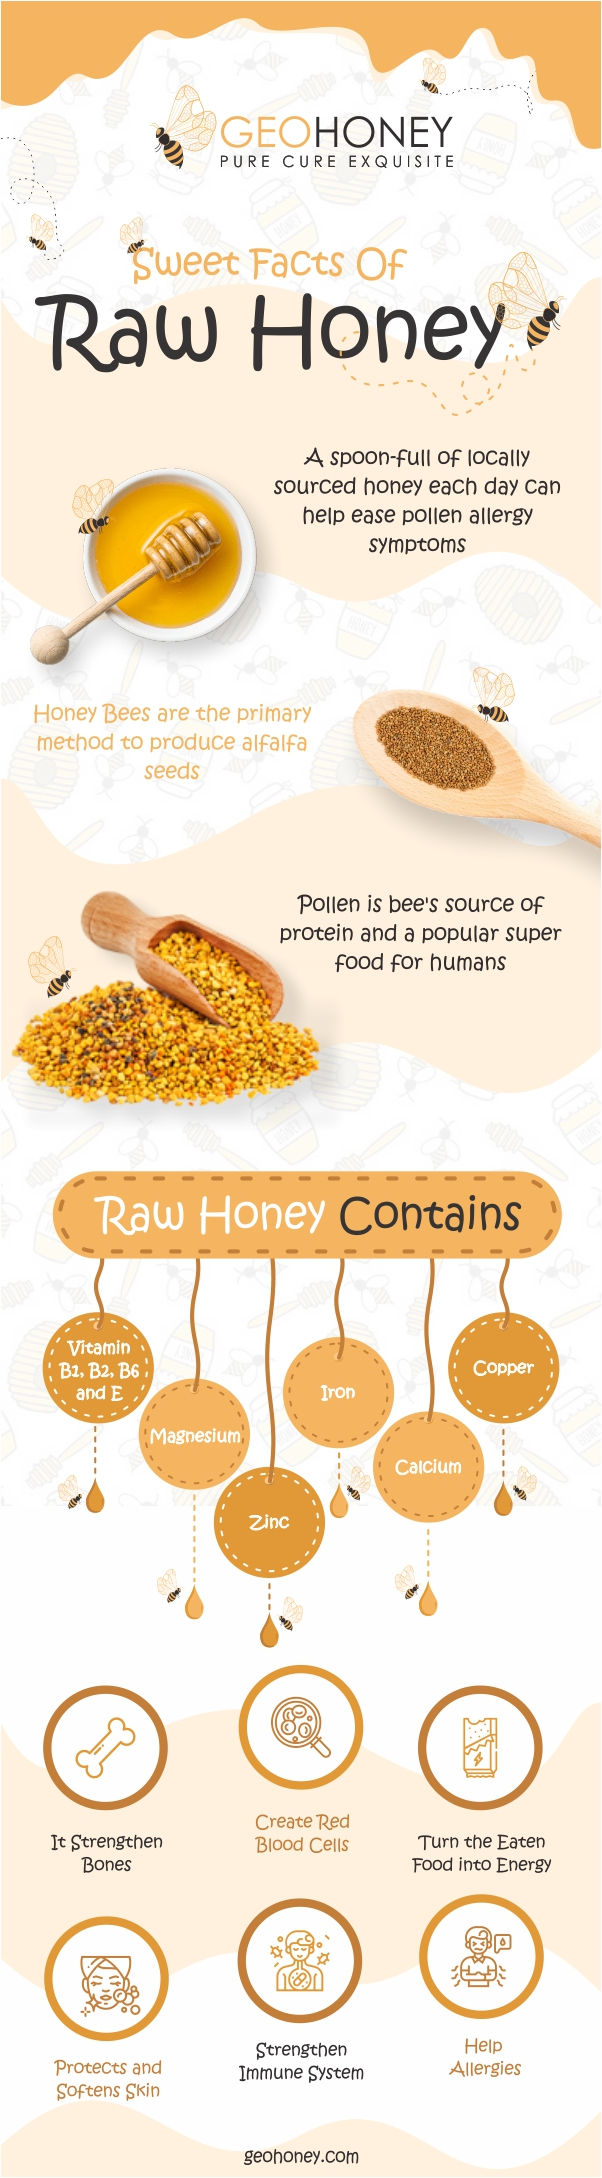 Sweet Facts - Raw honey